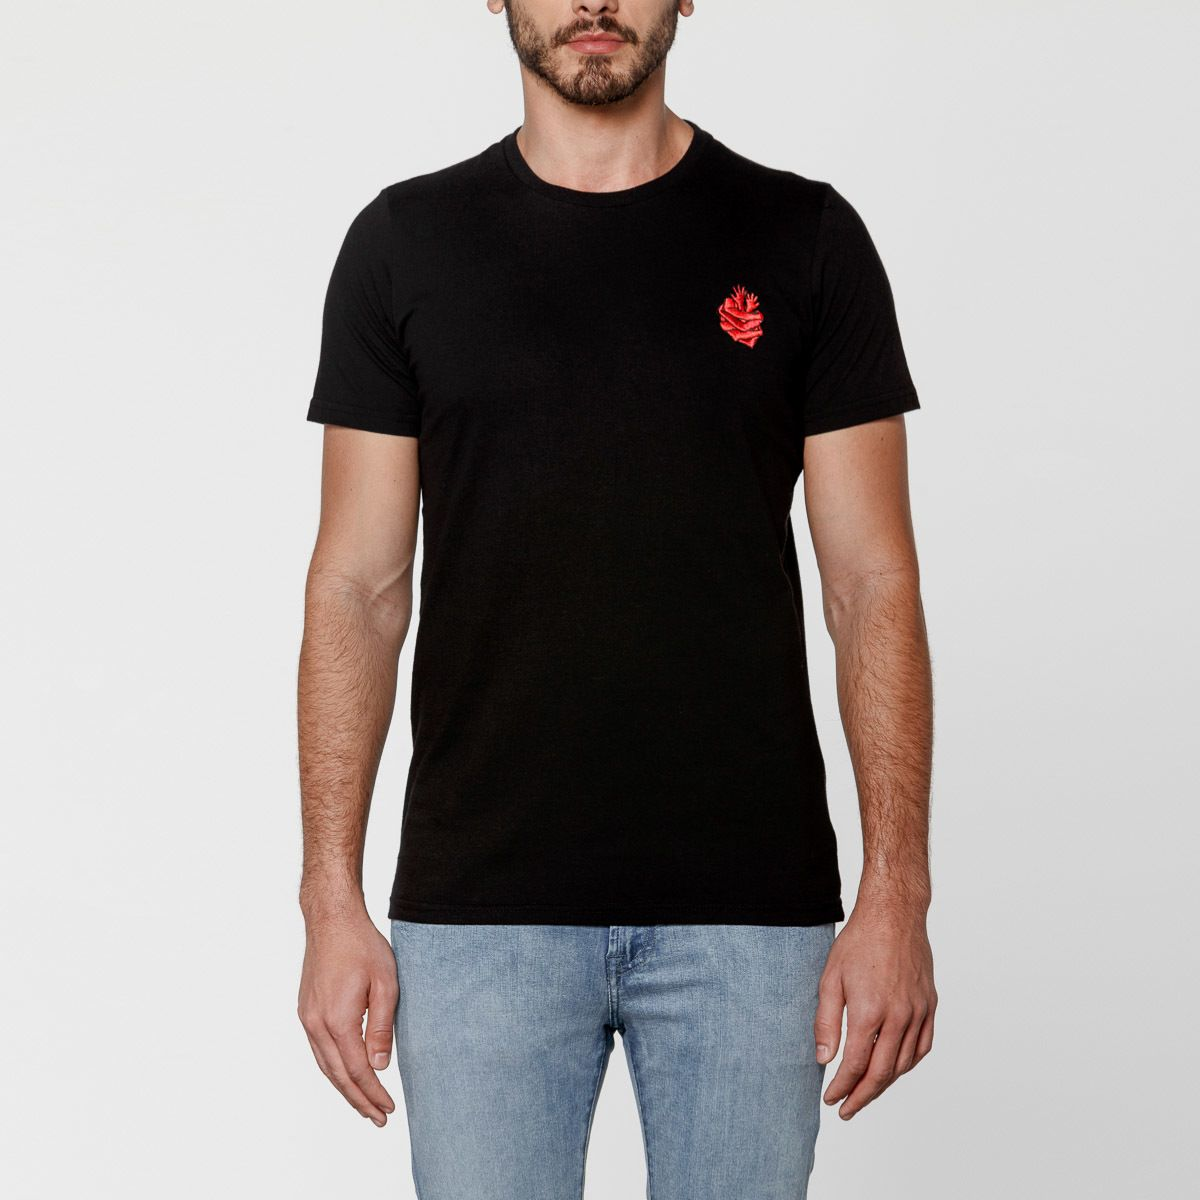 Camiseta Tresano Hugging Heart Slim Fit